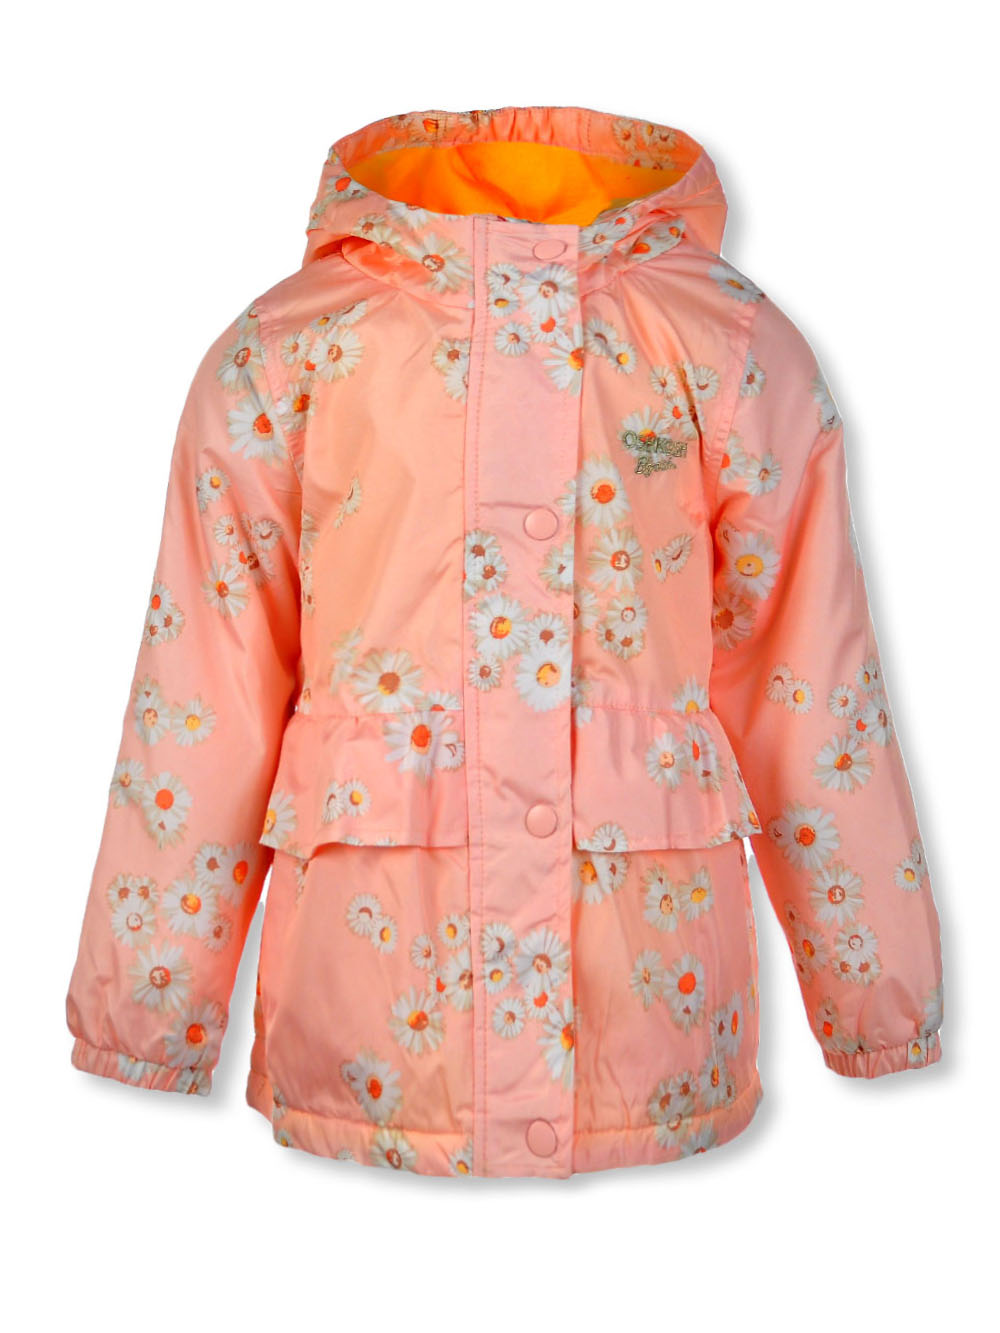 Size 6-6x Light Jackets for Girls